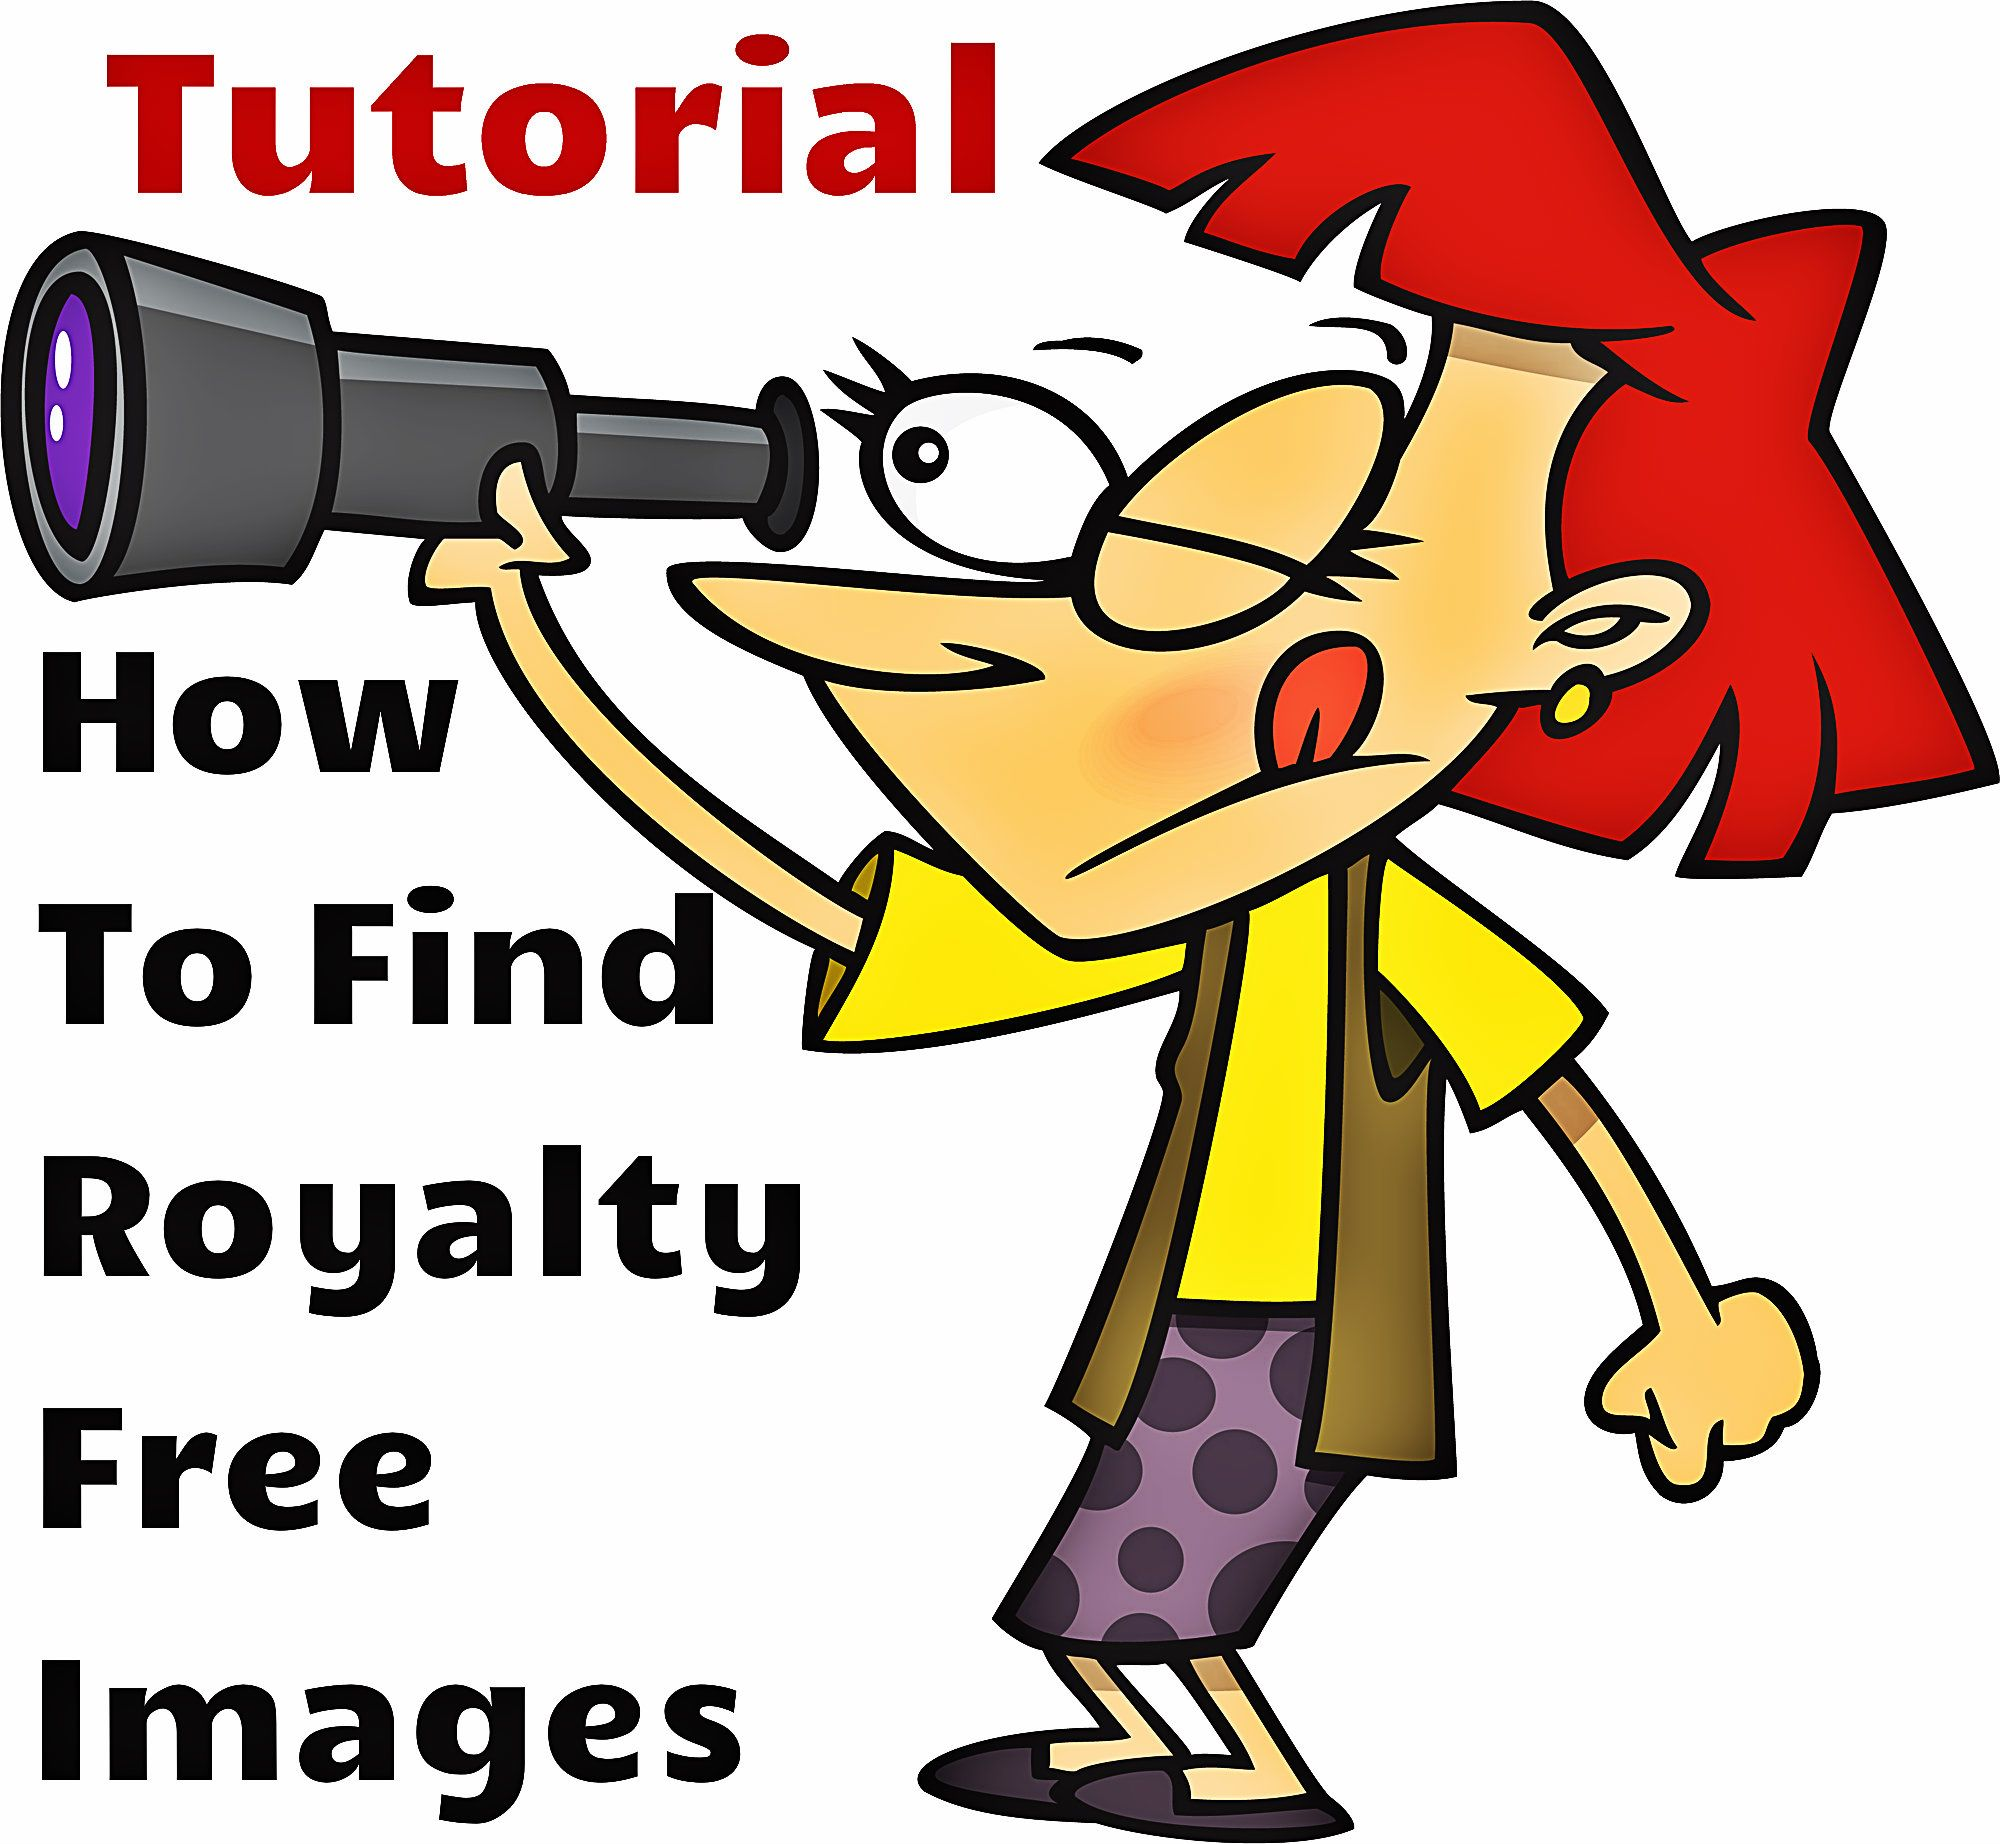 Free tutorial on how to find royalty free images and clipart.